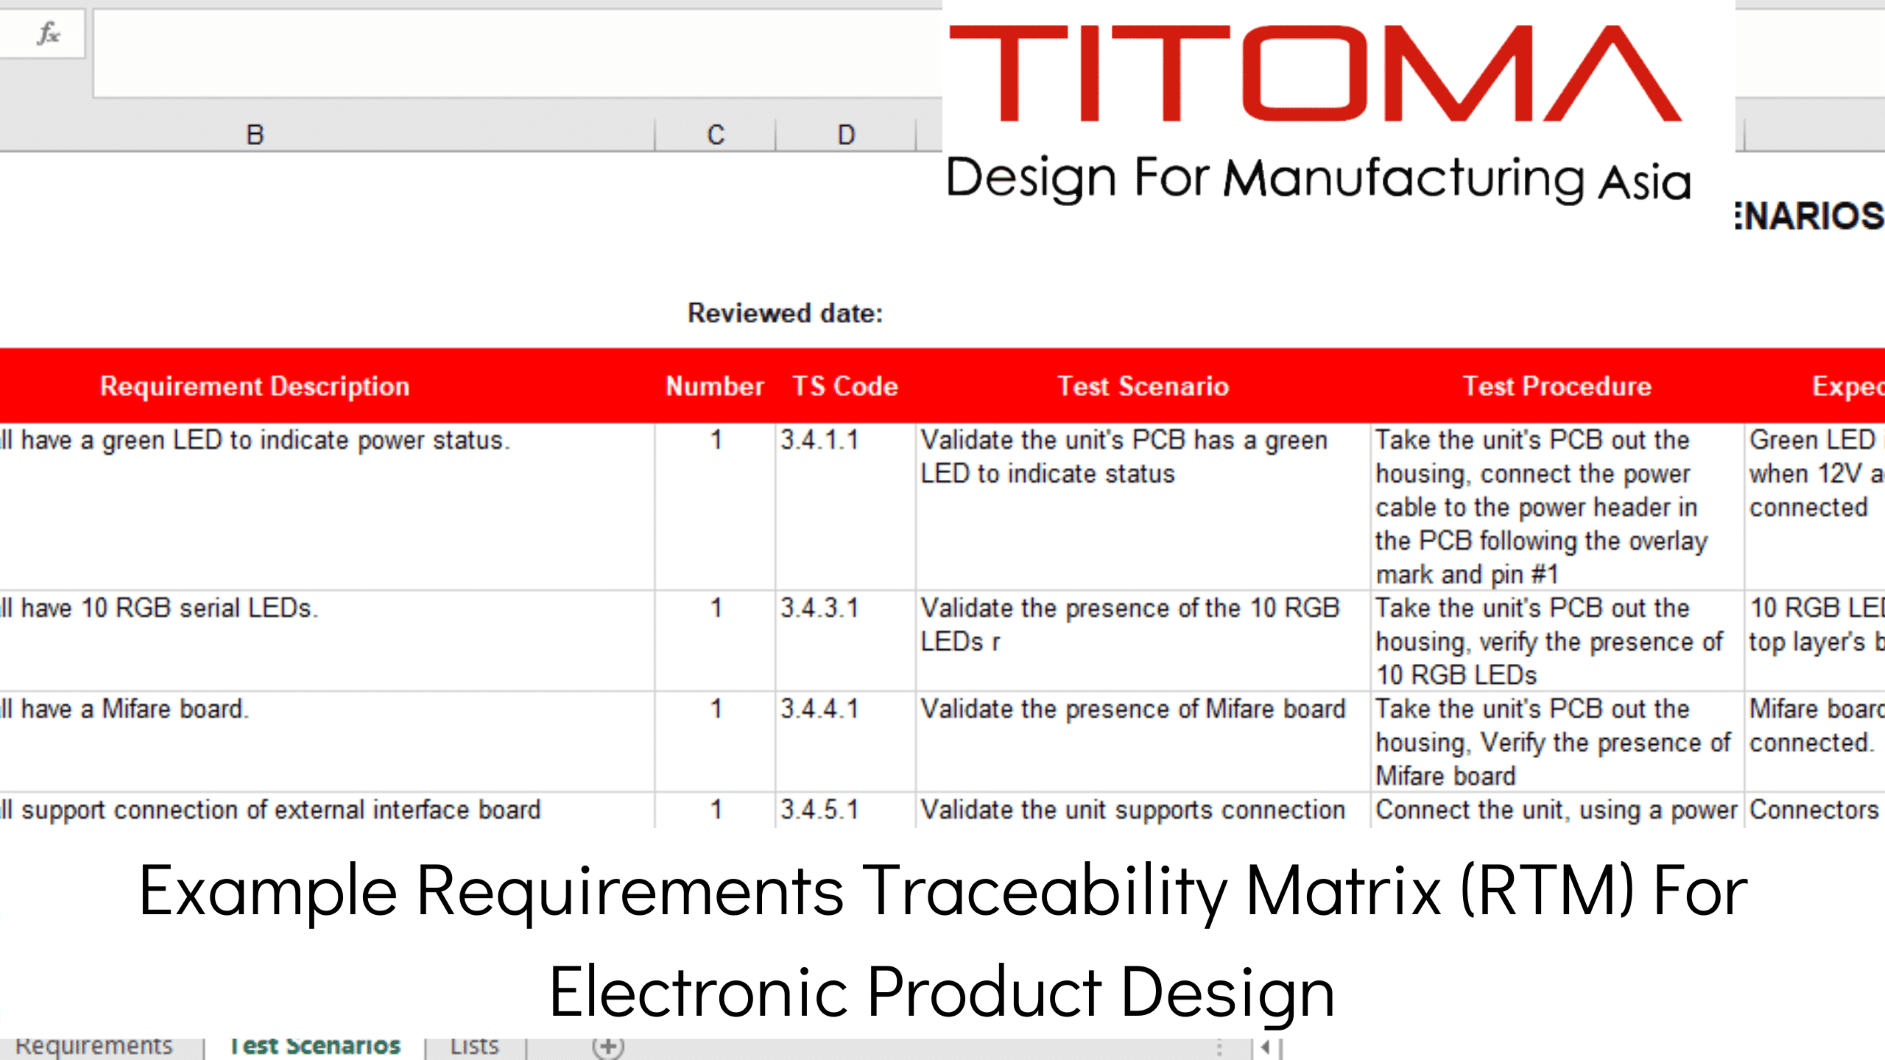 example requirements traceability matrix (RTM) for Electronic Product Design